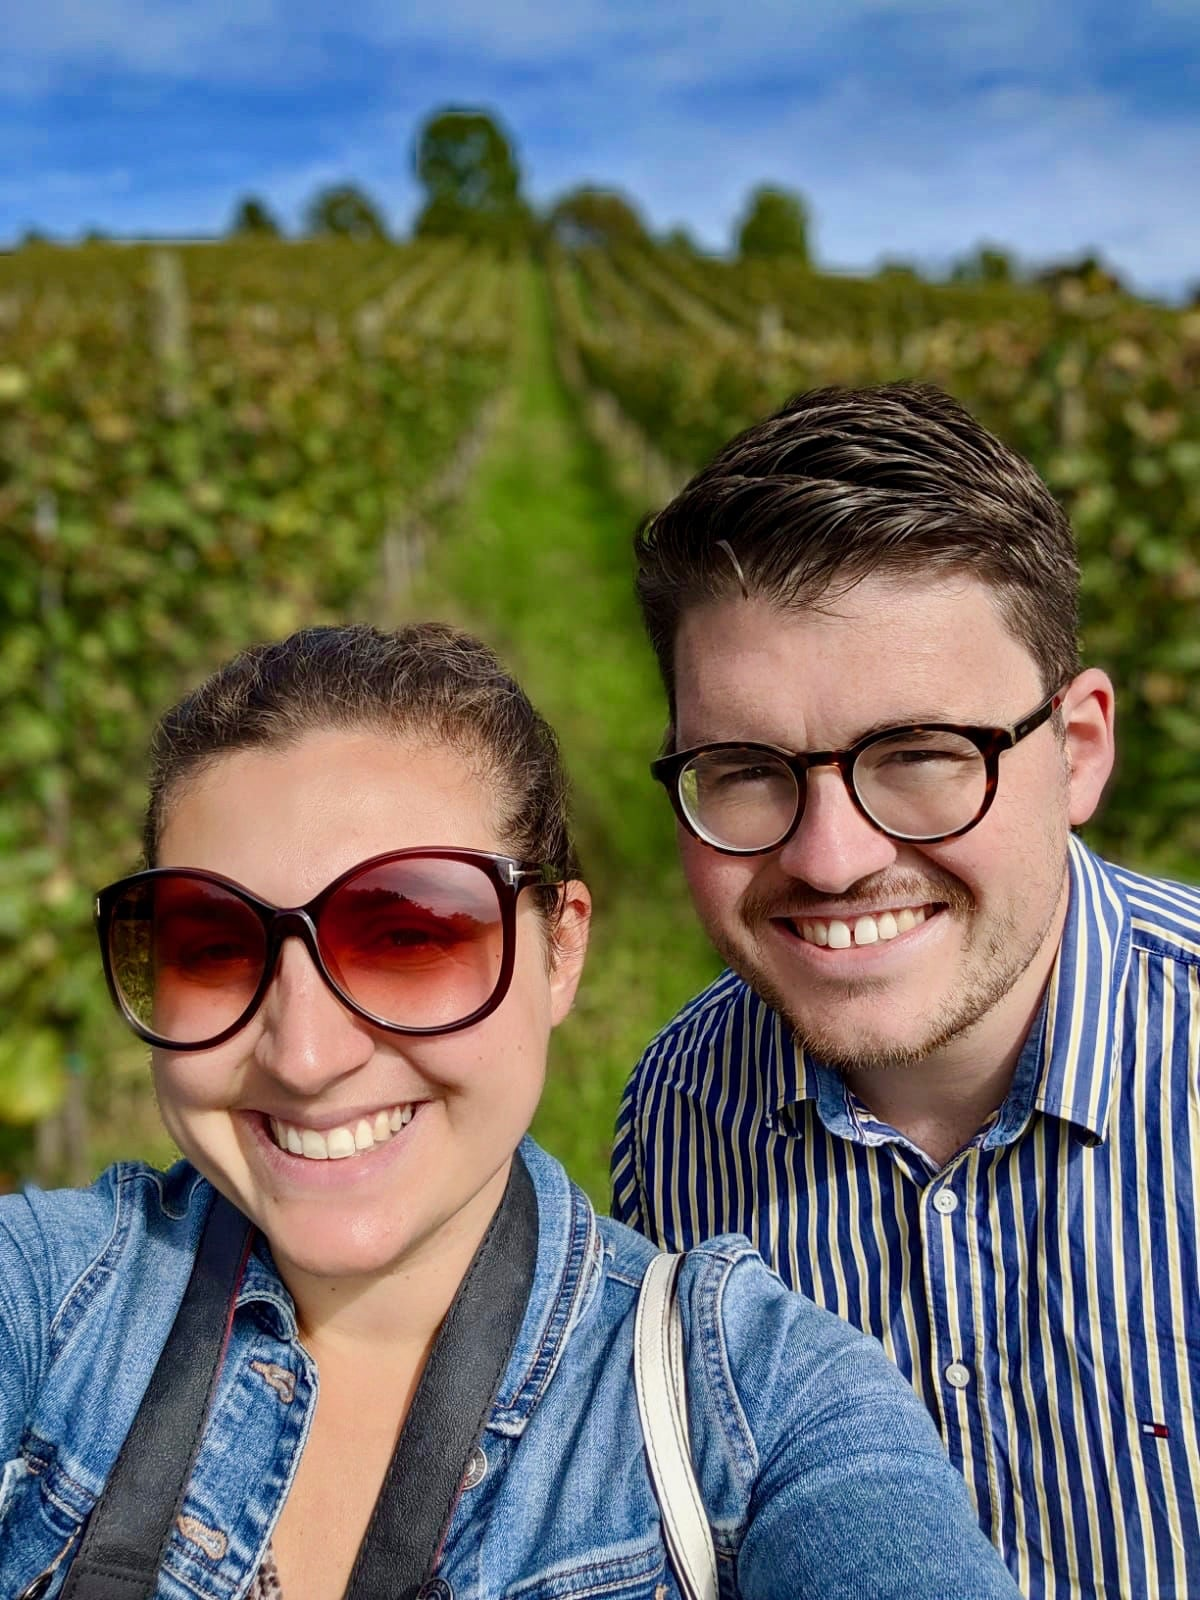 Glamping in Slovenia: Selfie of couple in Vineyard at Chateau Ramsak